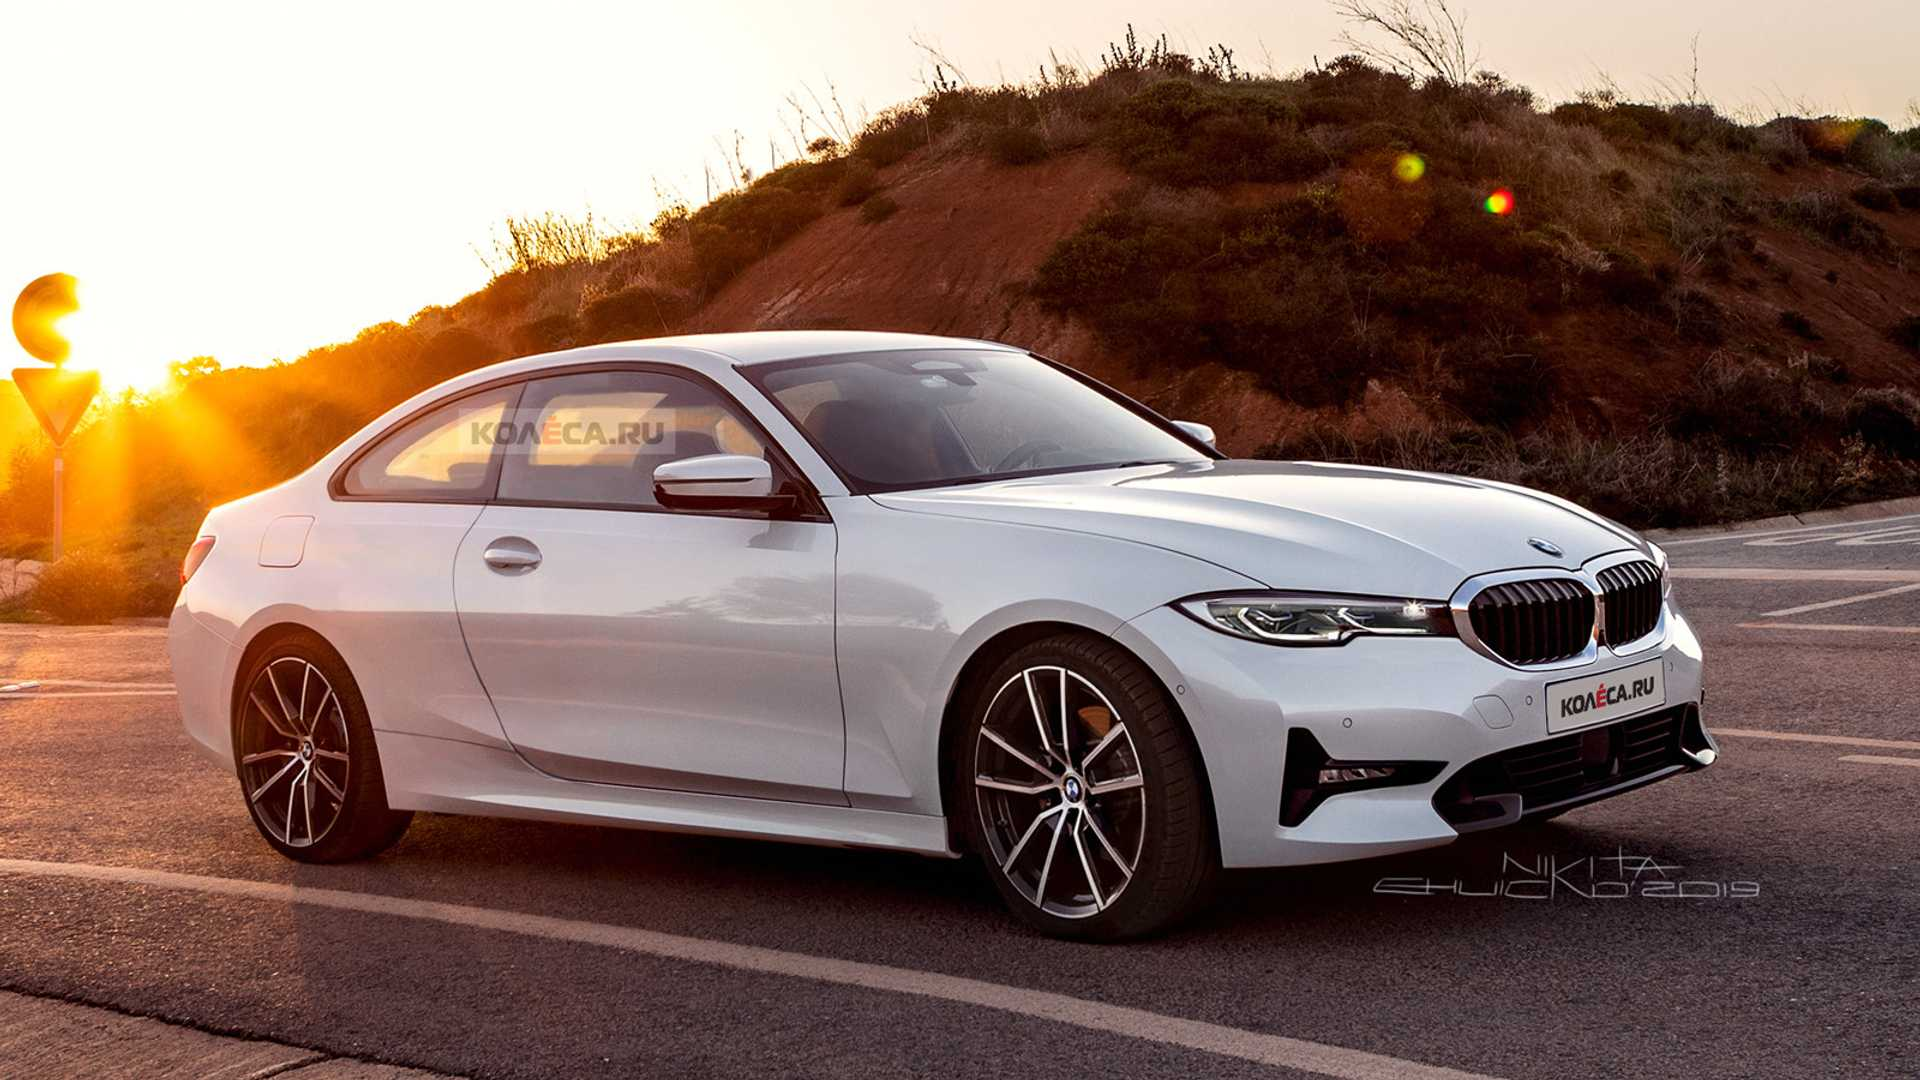 54 New Bmw New 4 Series 2020 Wallpaper